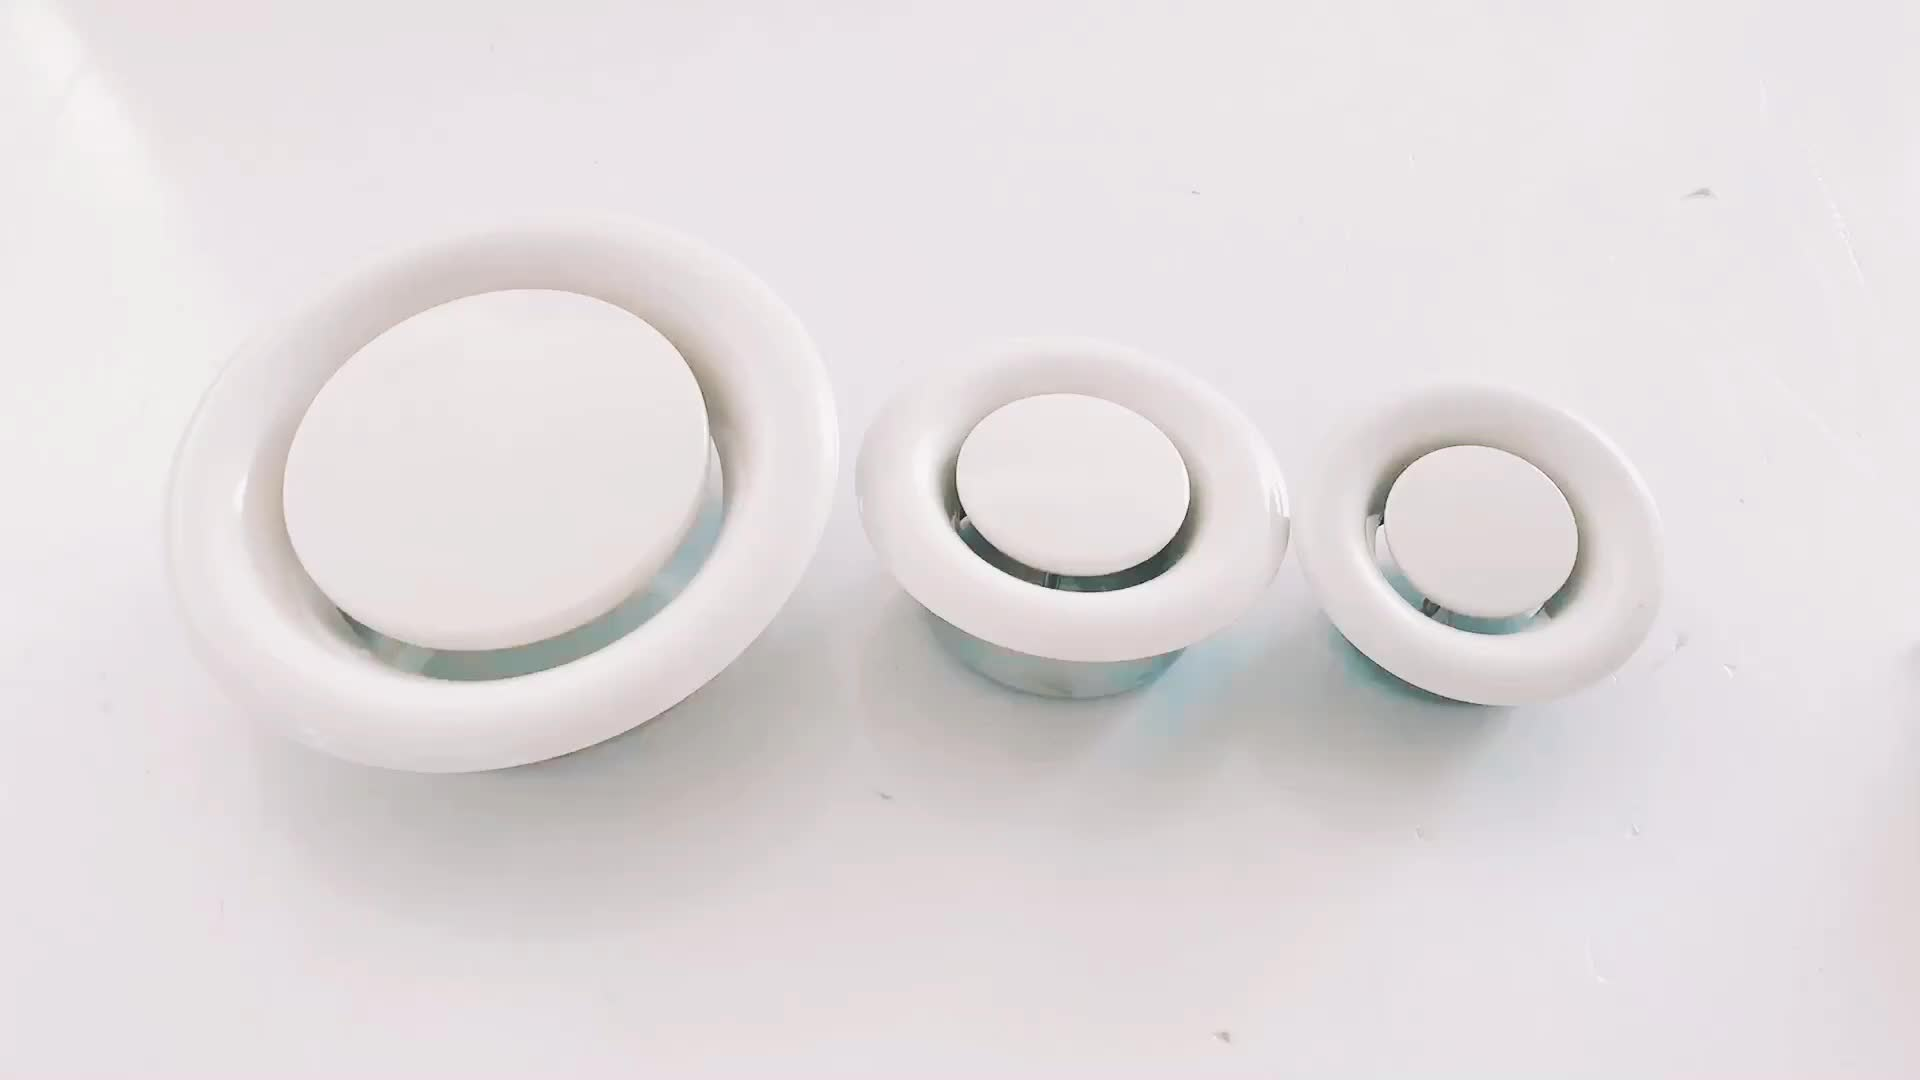 Ceiling Round Duct Manual Adjustable Exhaust Air Vents